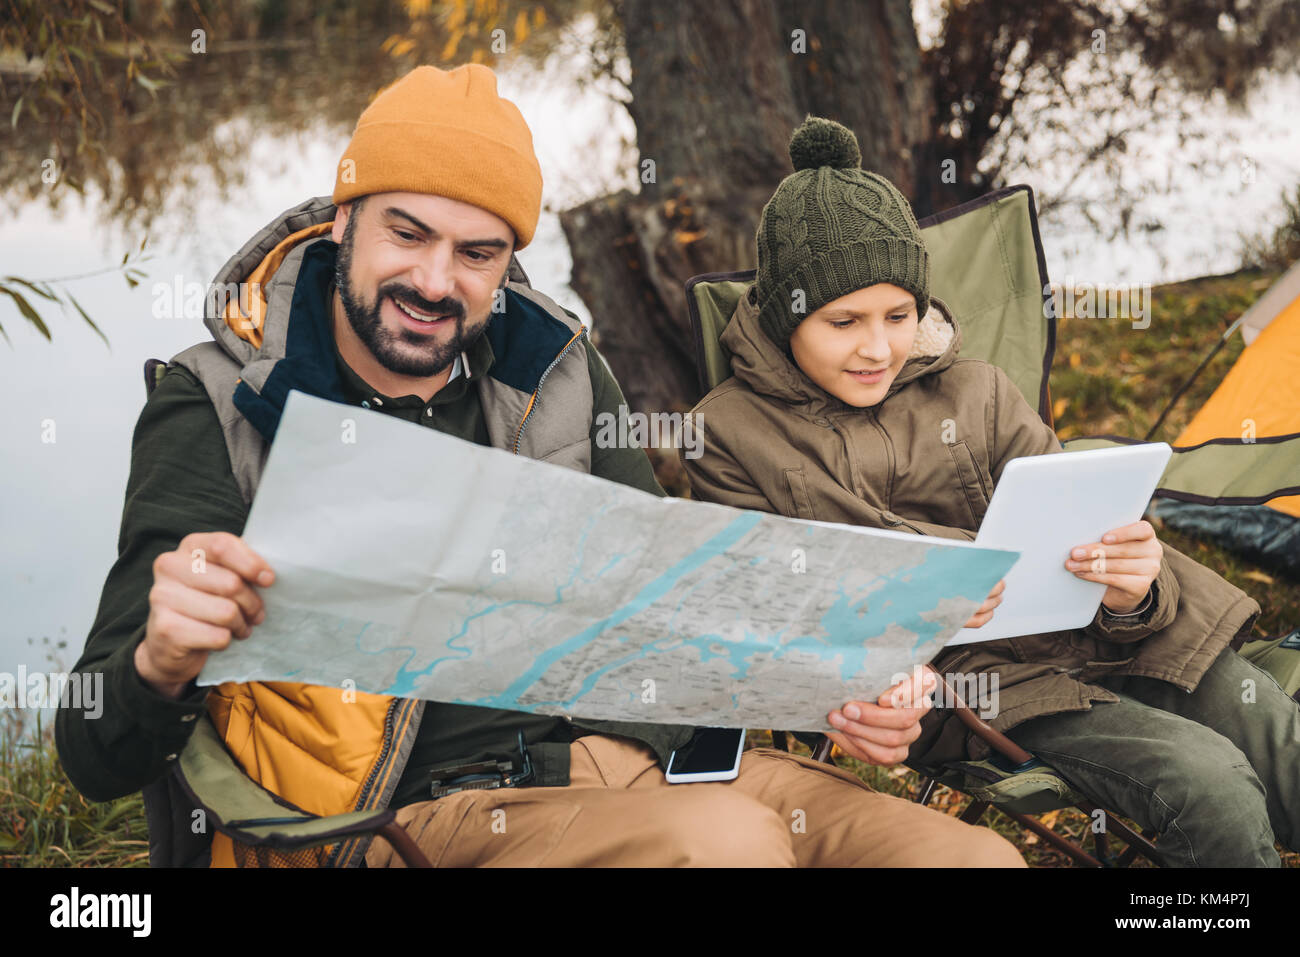 Father looking at map - Stock Image